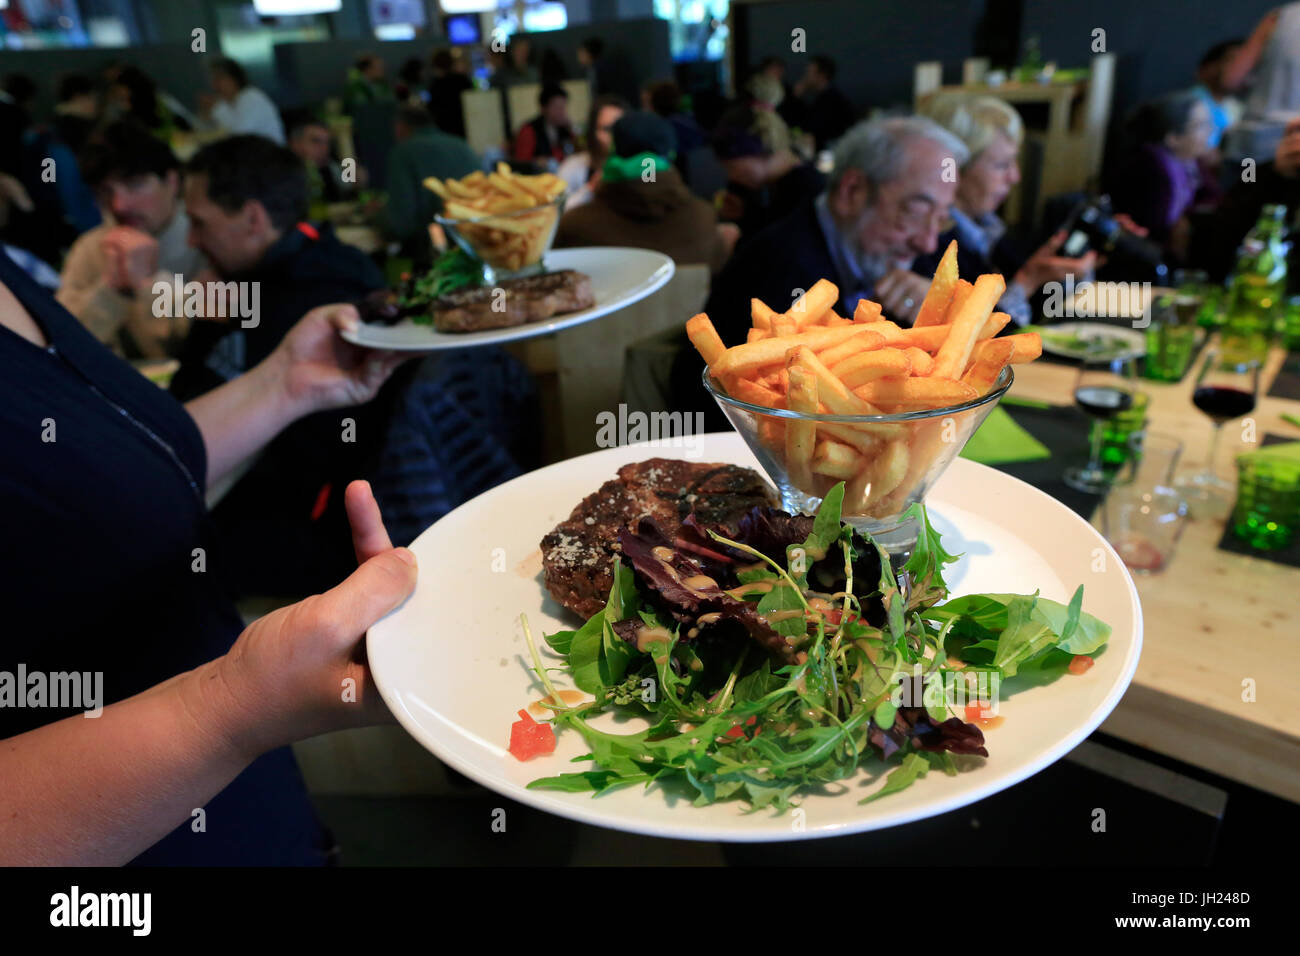 Restaurant. Steak and french fries. France. - Stock Image